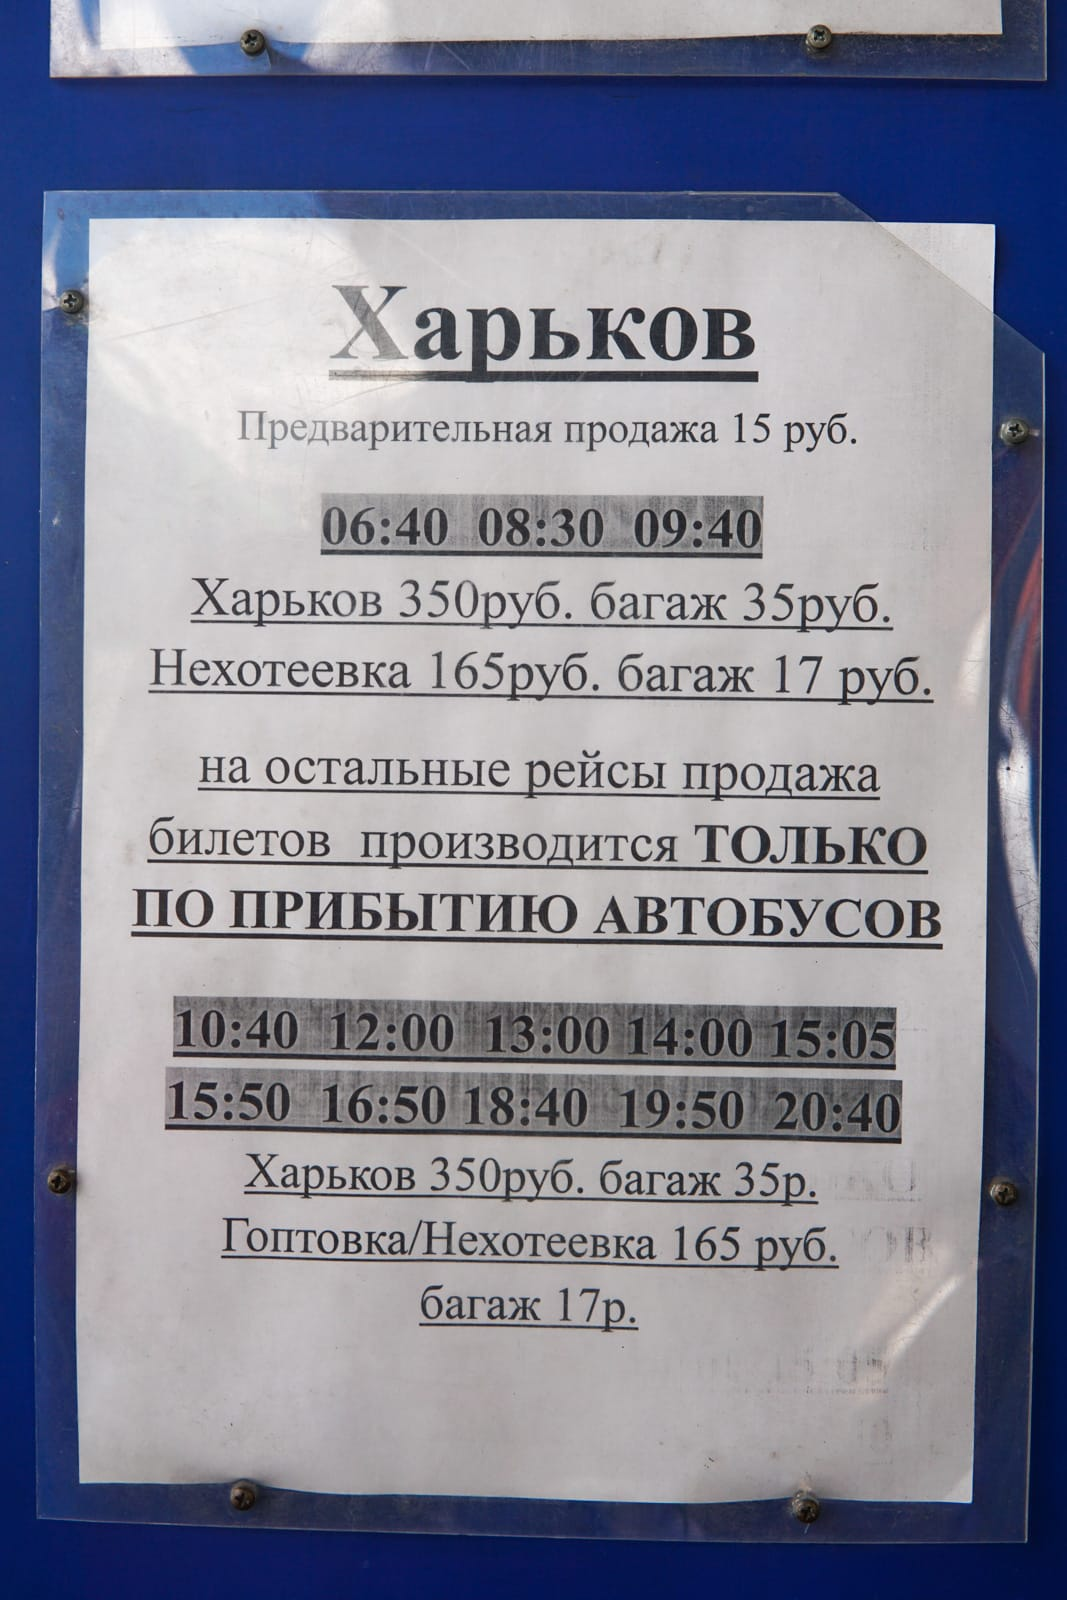 Bus ticket prices to Kharkiv, Ukraine